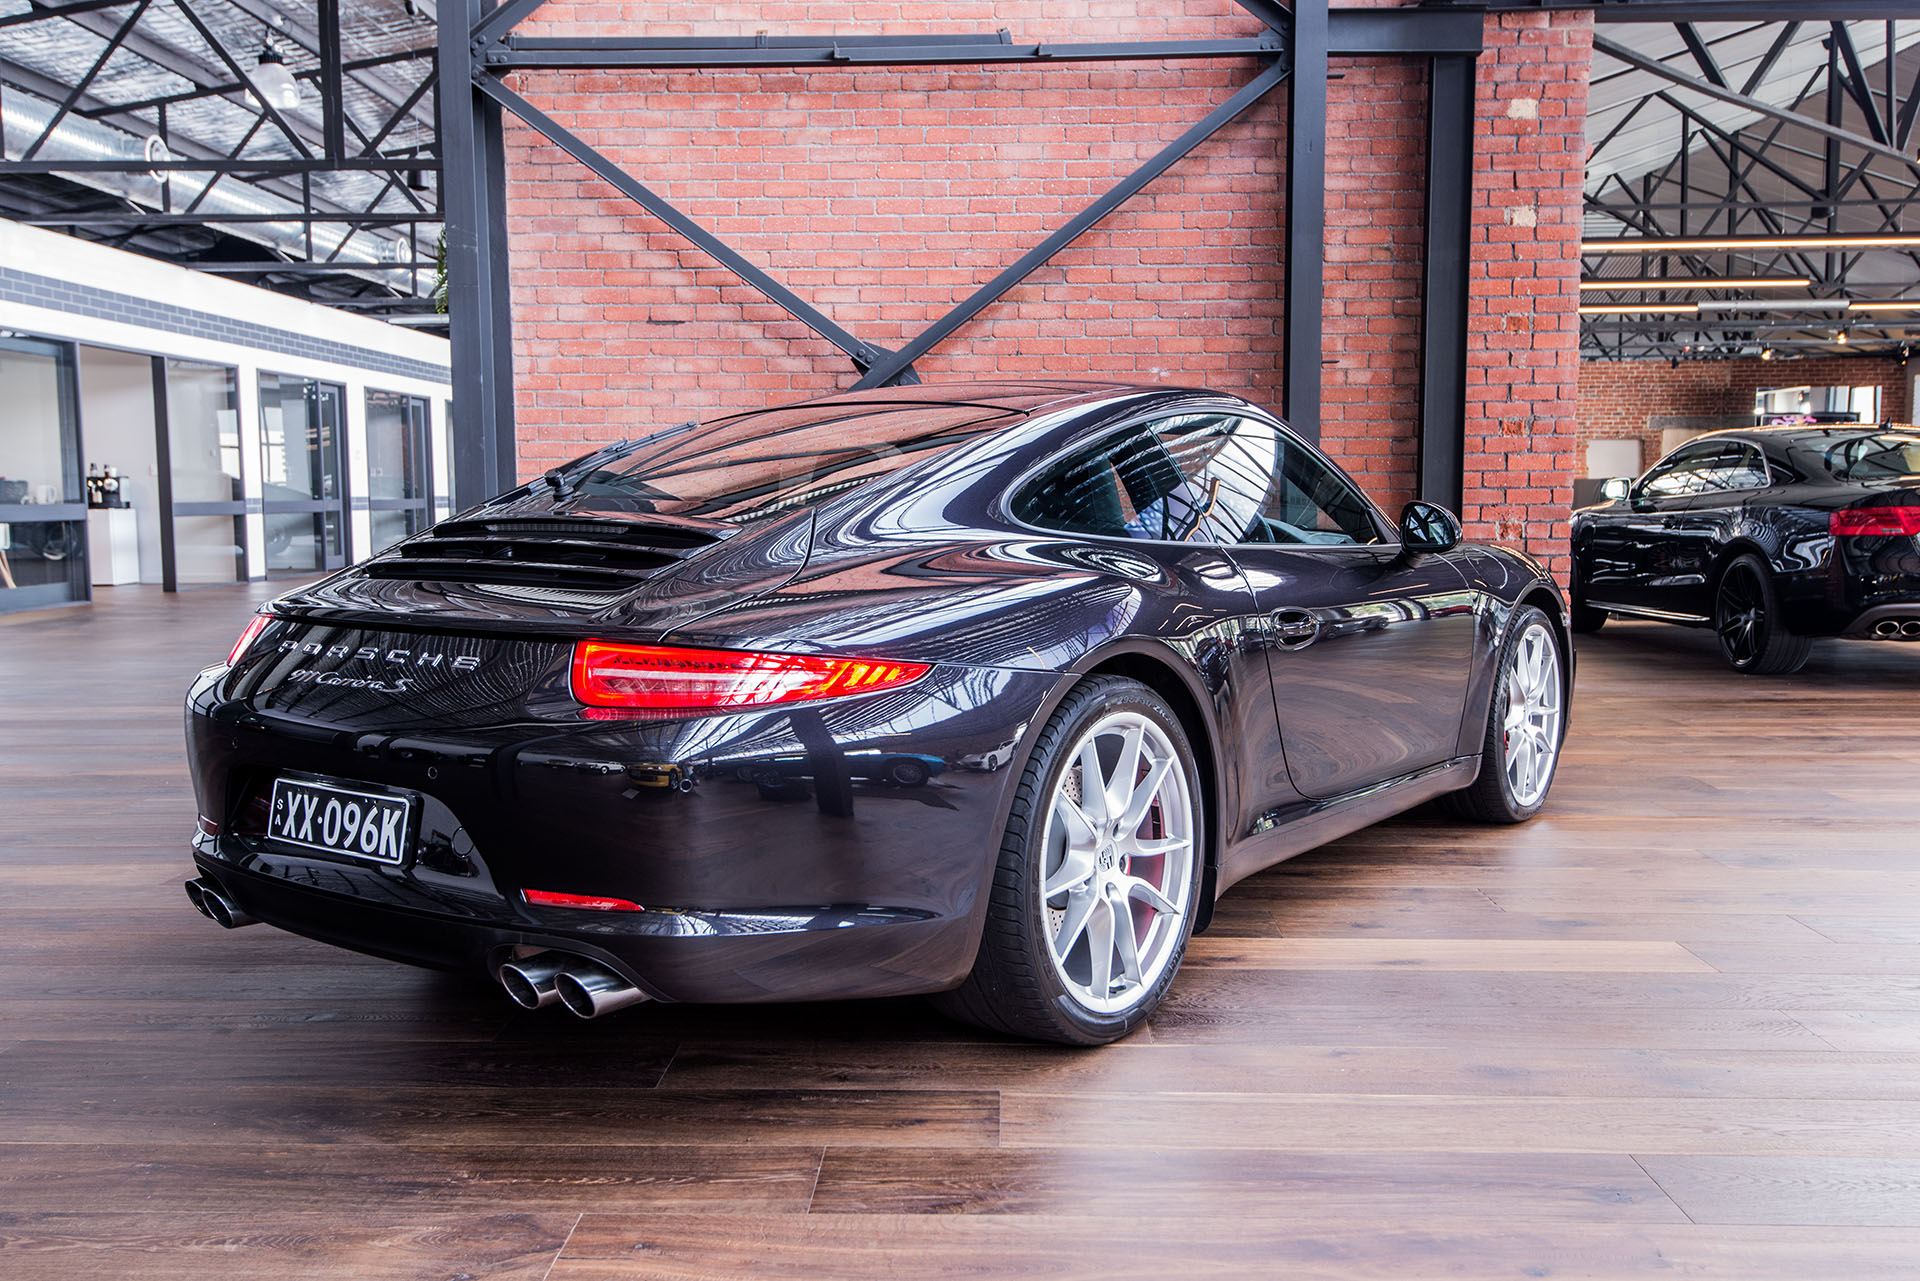 My13 Porsche 911 Carrera S Richmonds Classic And